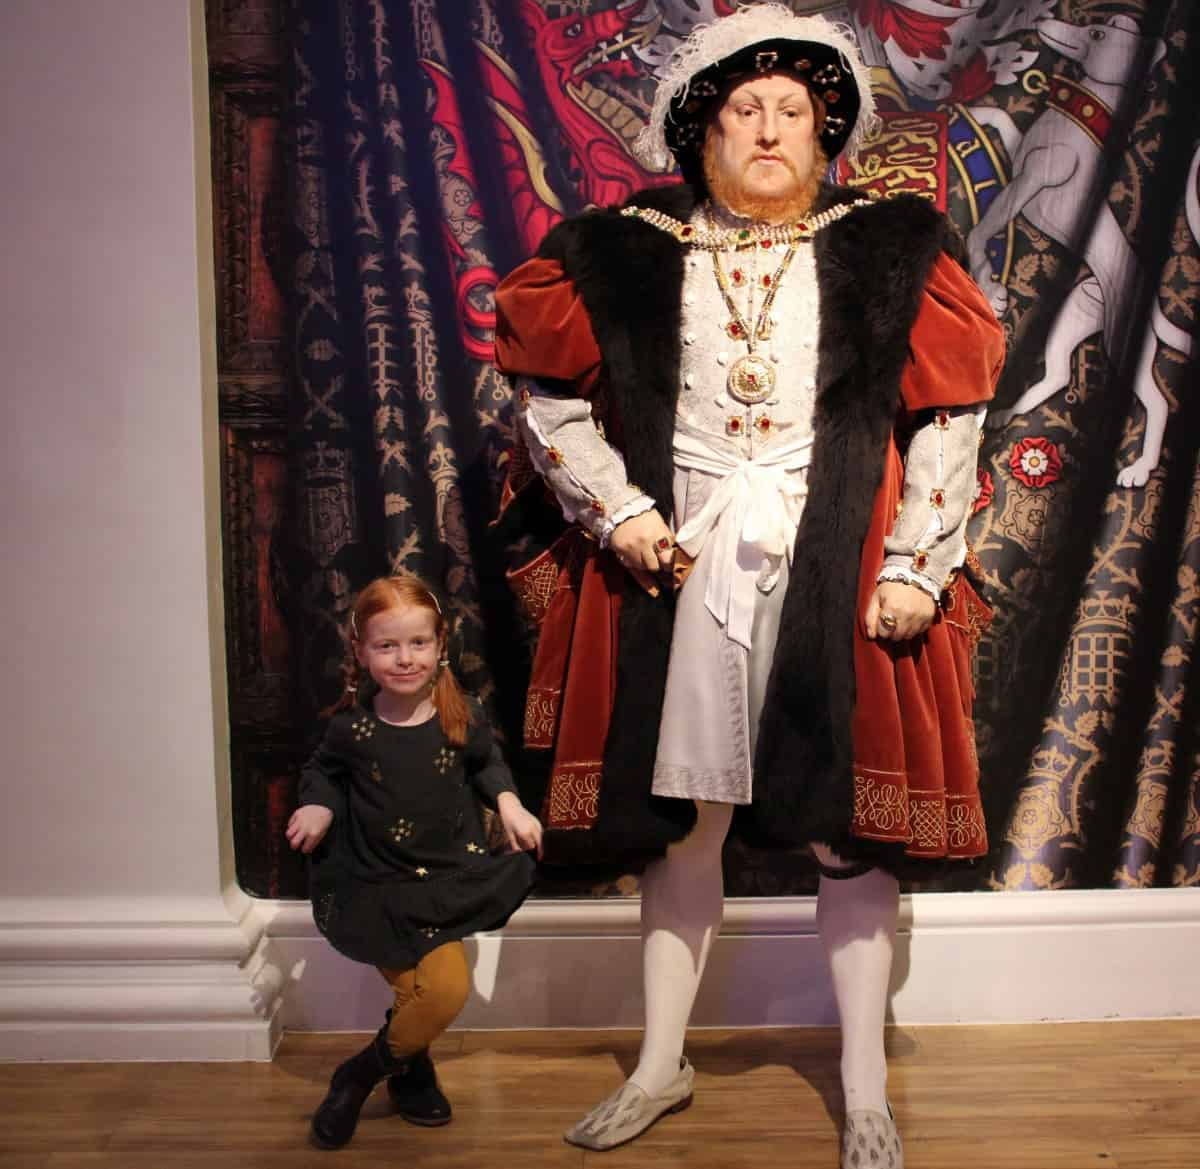 Top Tips for Visiting Madame Tussauds with Kids